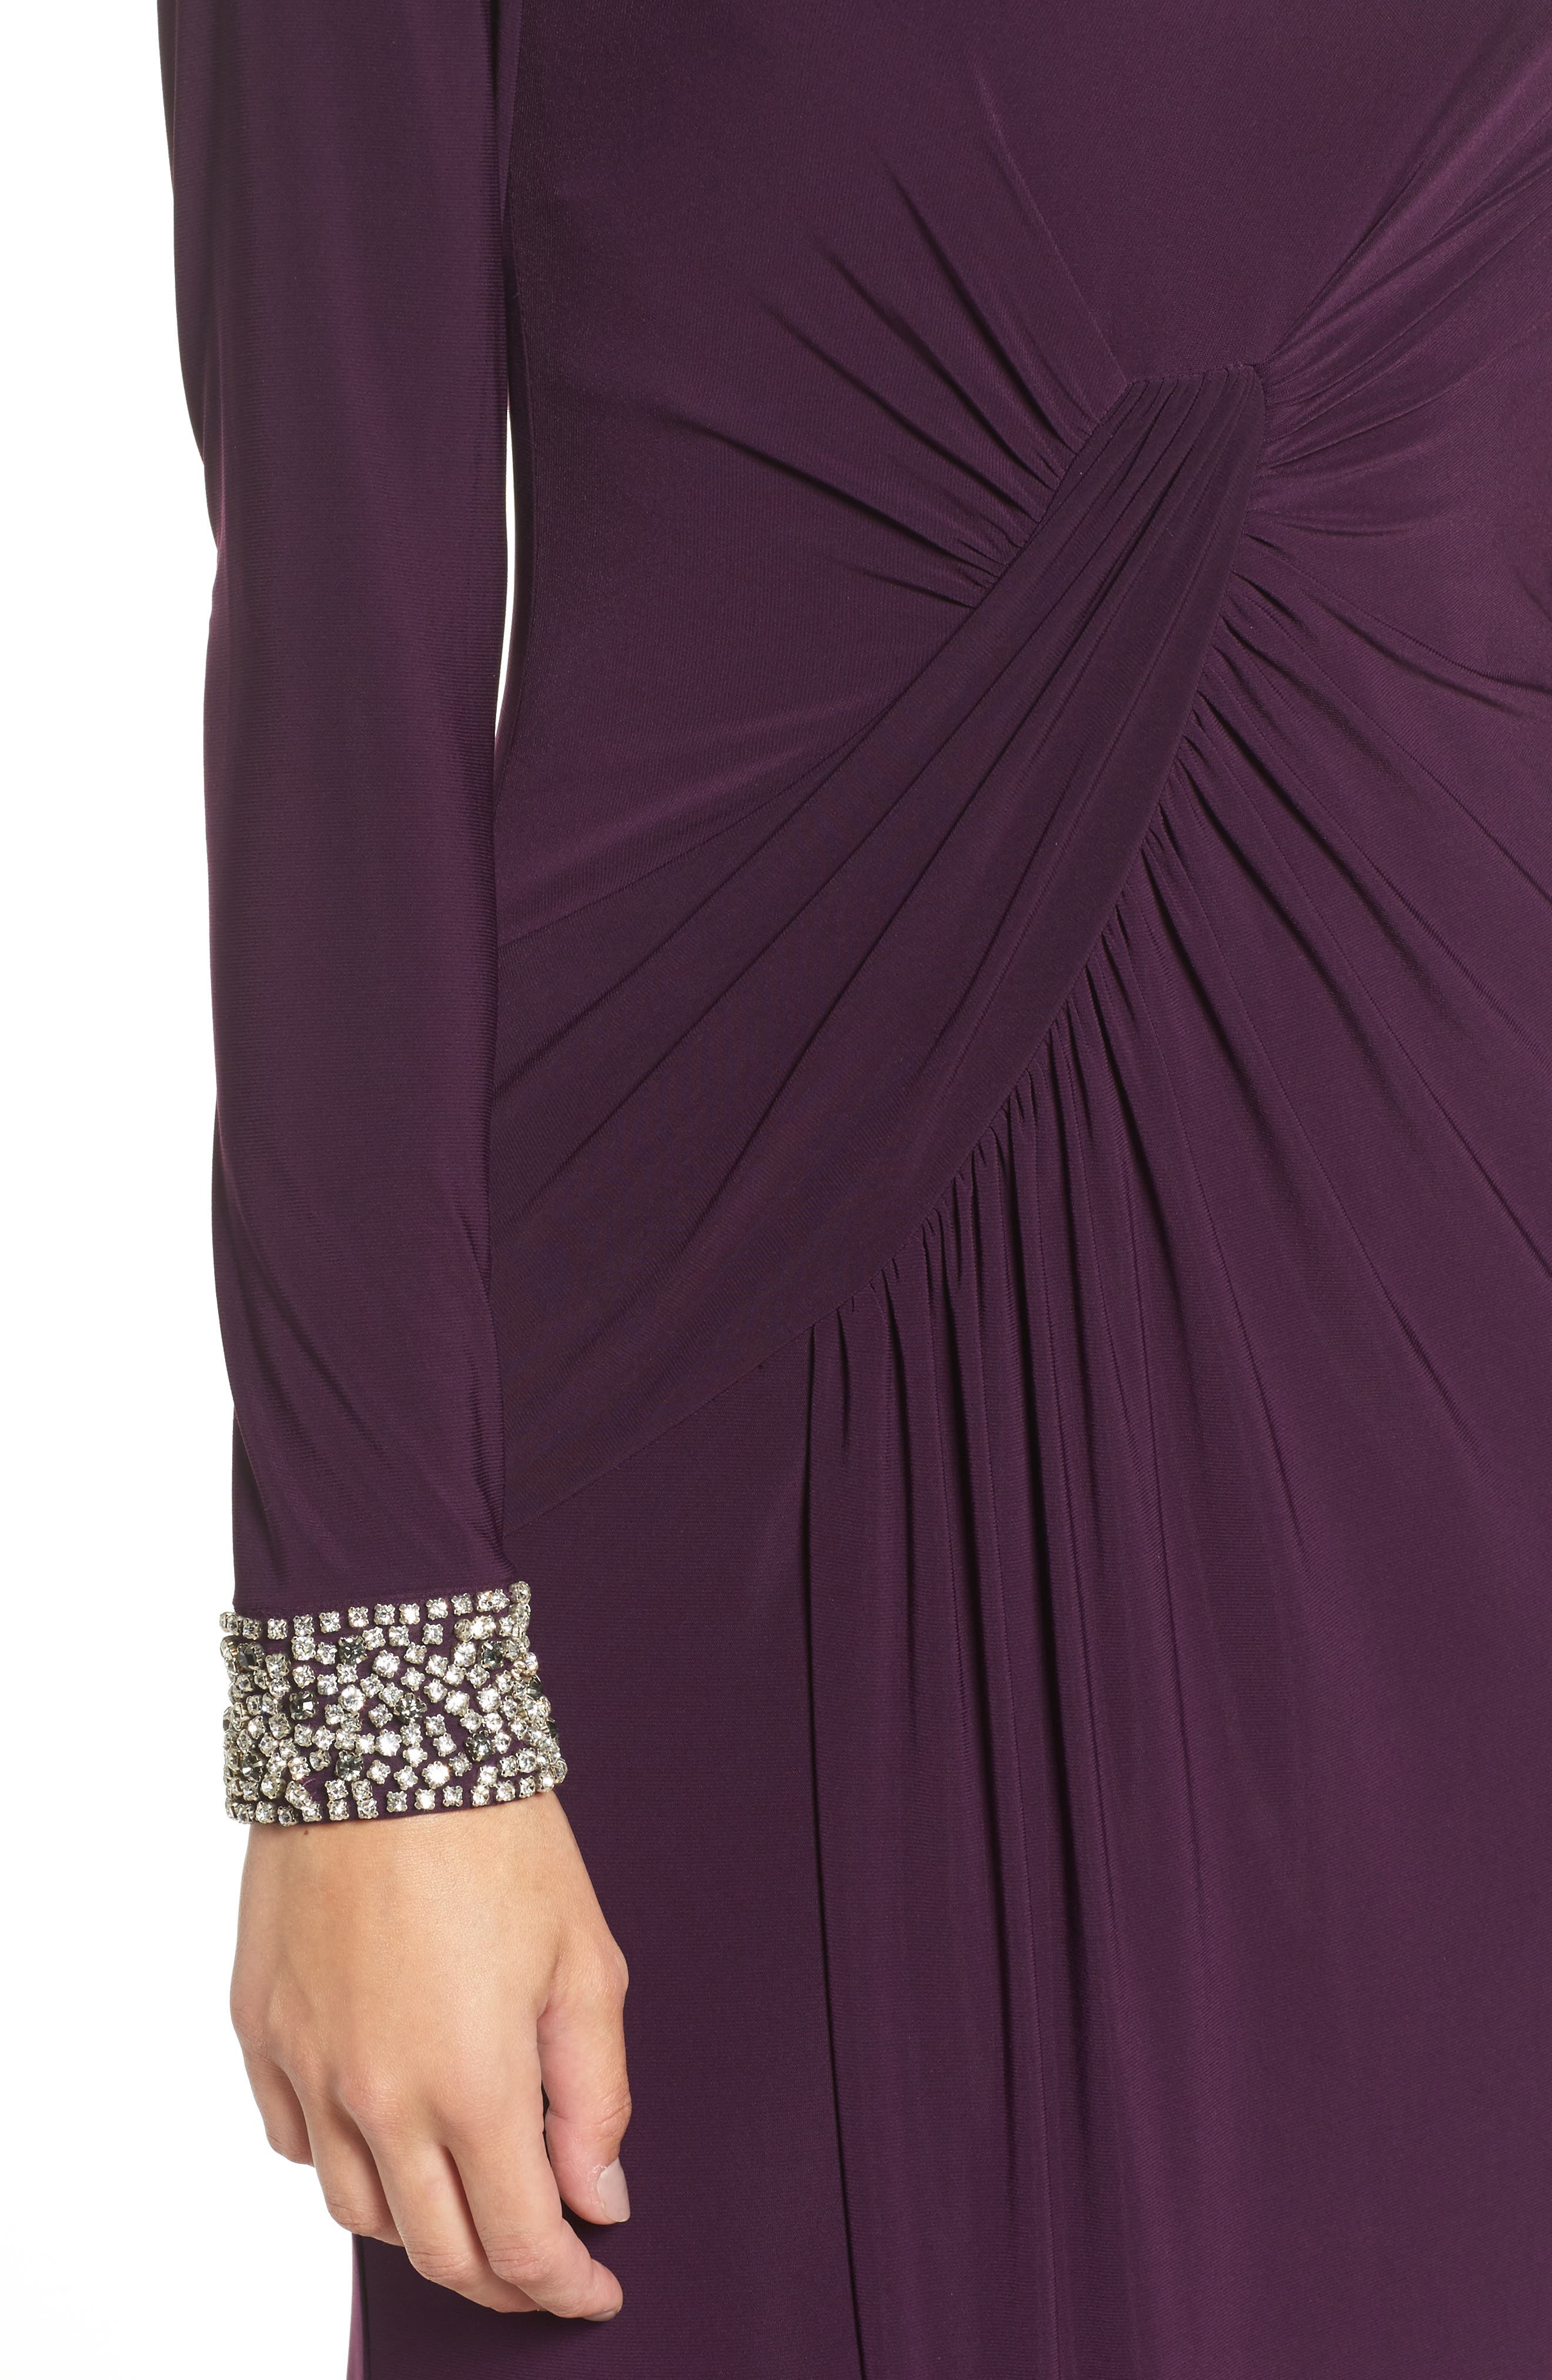 VINCE CAMUTO, Beaded Cuff Ruched Jersey Gown, Alternate thumbnail 4, color, 505